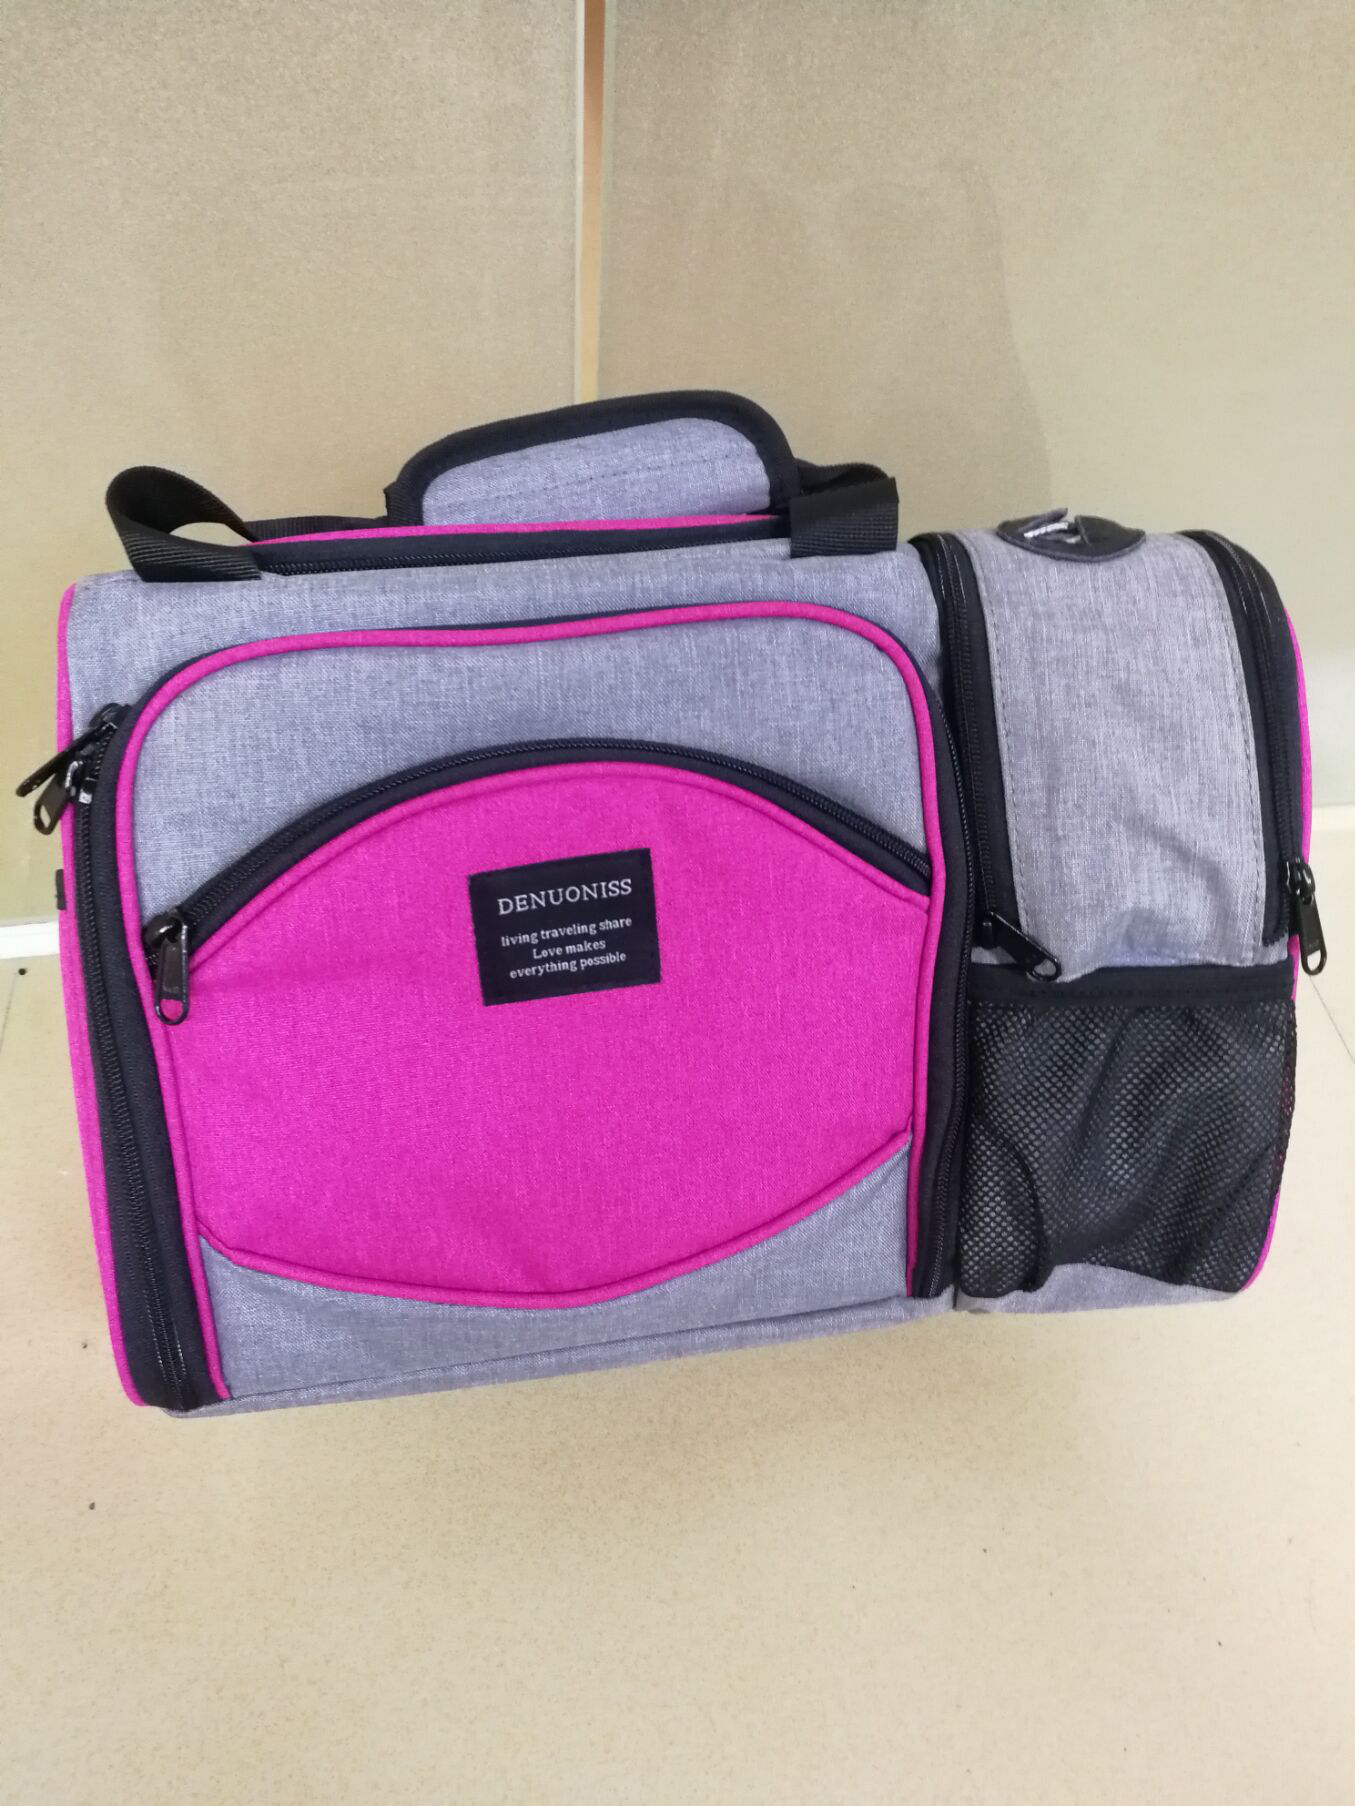 Waterproof Picnic Lunch Bag Insulated Portable Fabric Thermal Cooler Bag Large Volume Storage Bag Wine Bag photo review